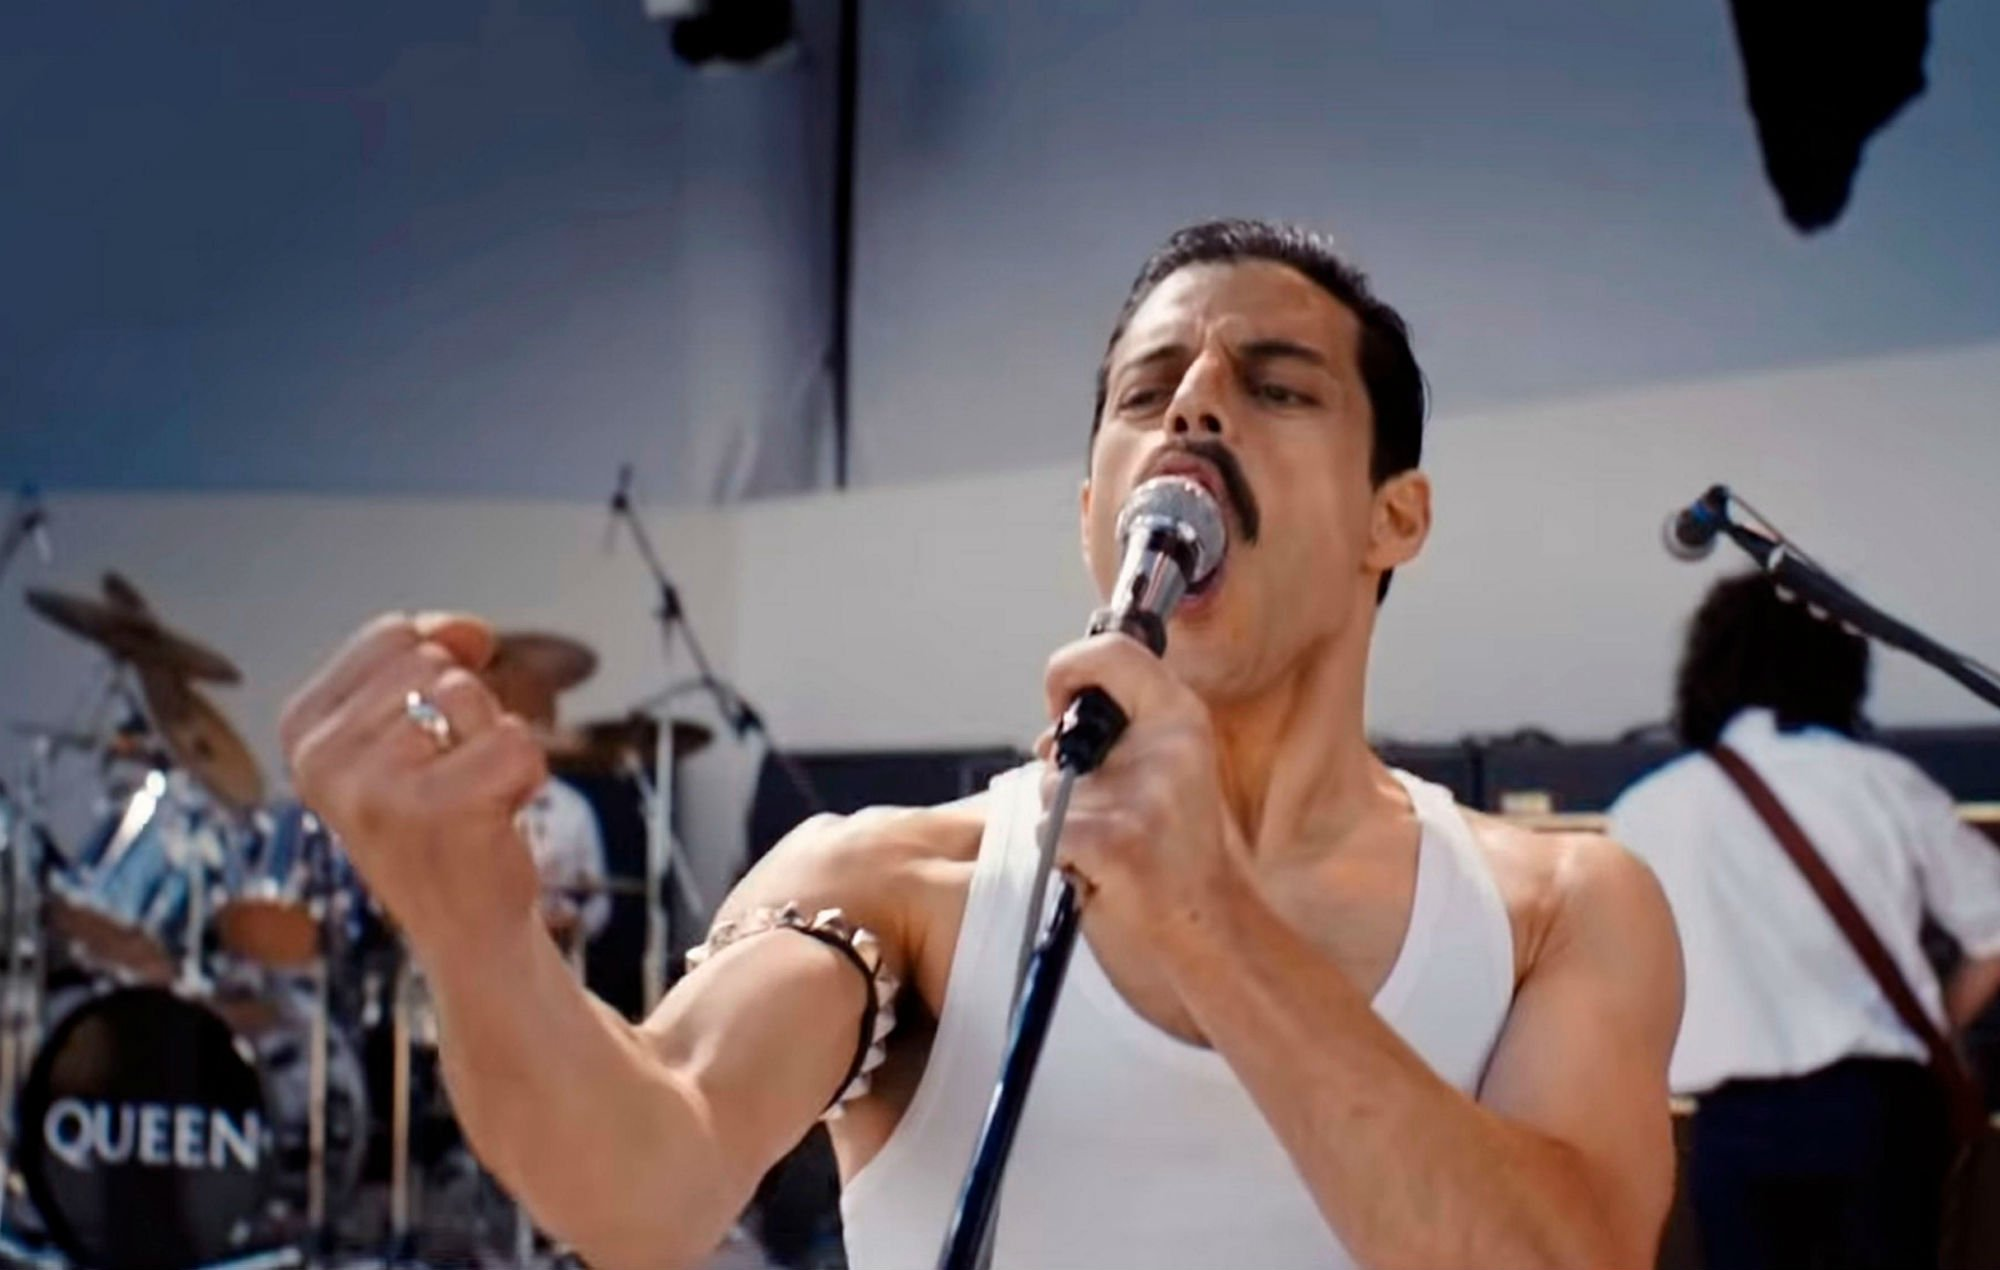 PRY8WA 1 25 Things You Need To Know About Bohemian Rhapsody